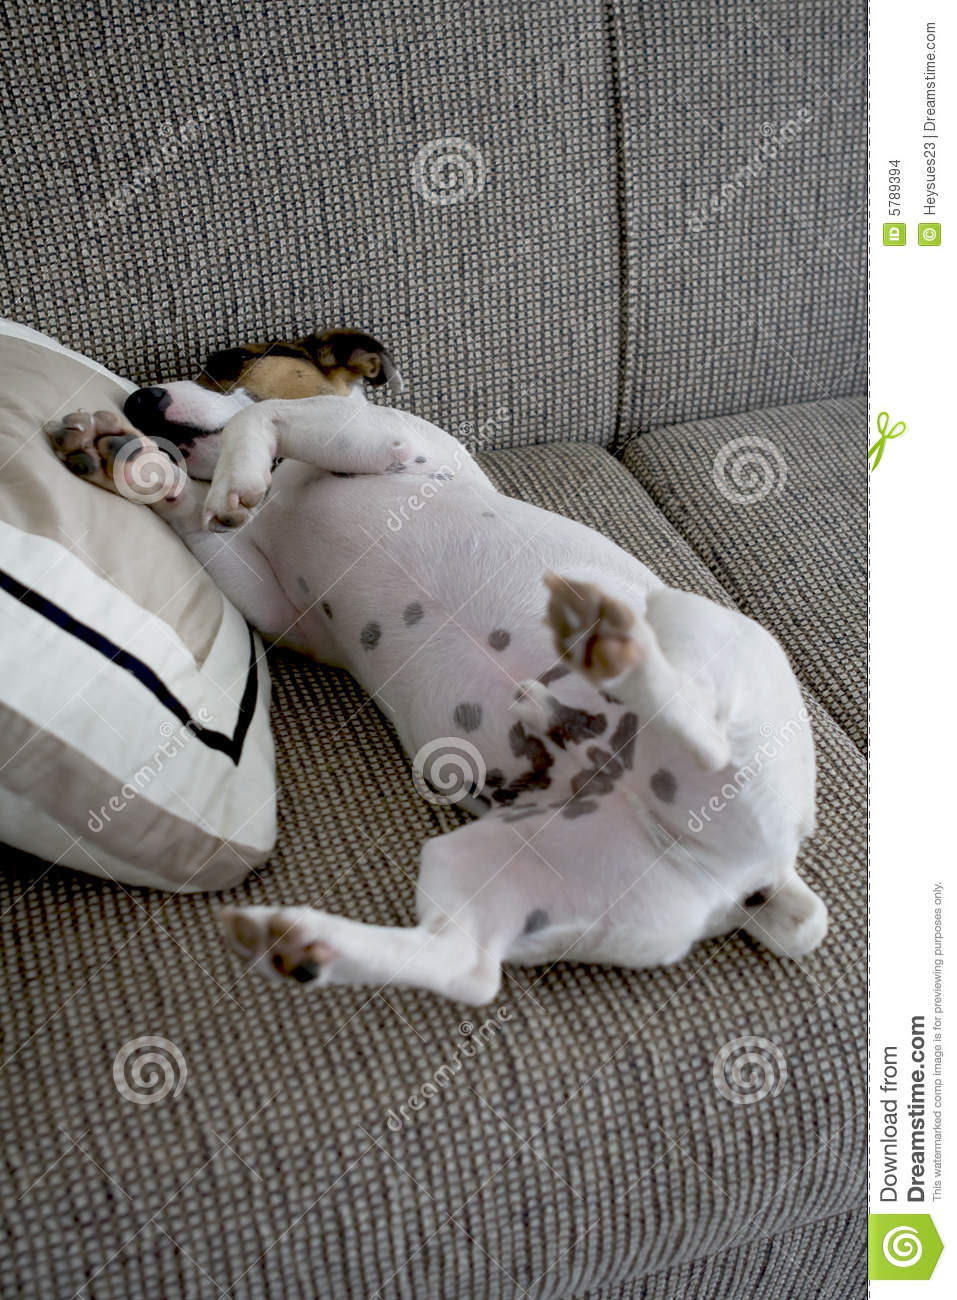 Jack Russel Sleeping On A Pillow Stock Photo  Image of